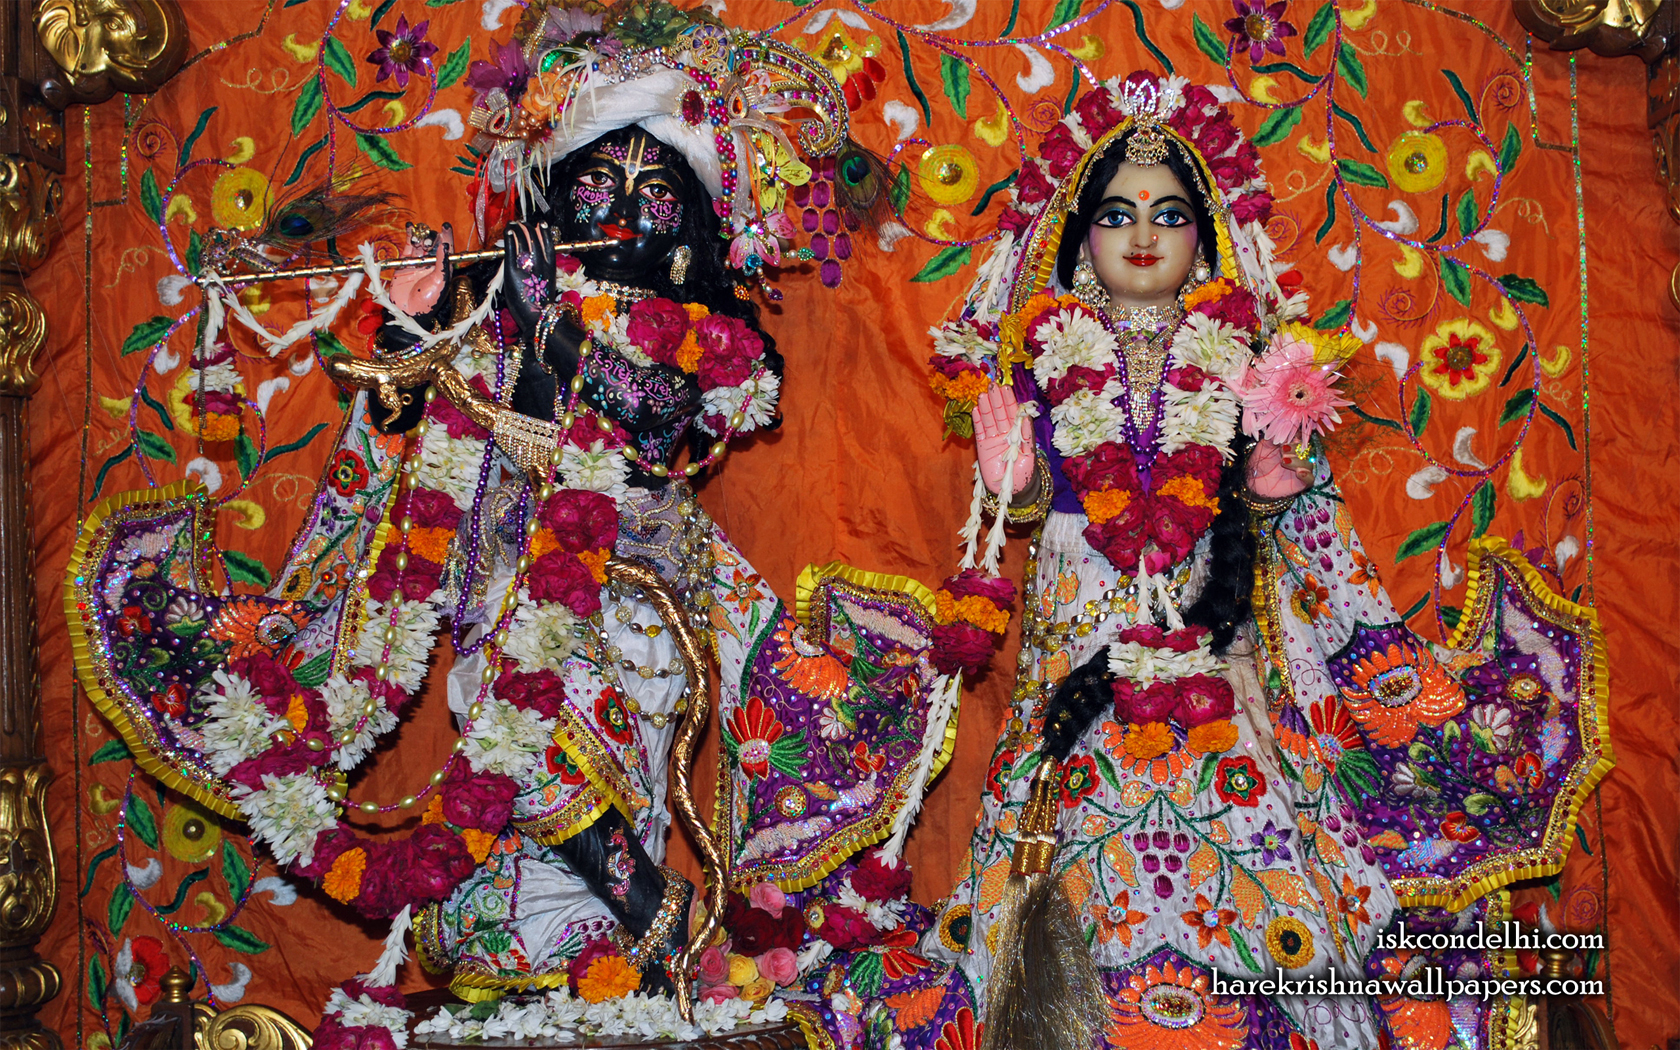 Sri Sri Radha Parthasarathi Wallpaper (013) Size 1680x1050 Download